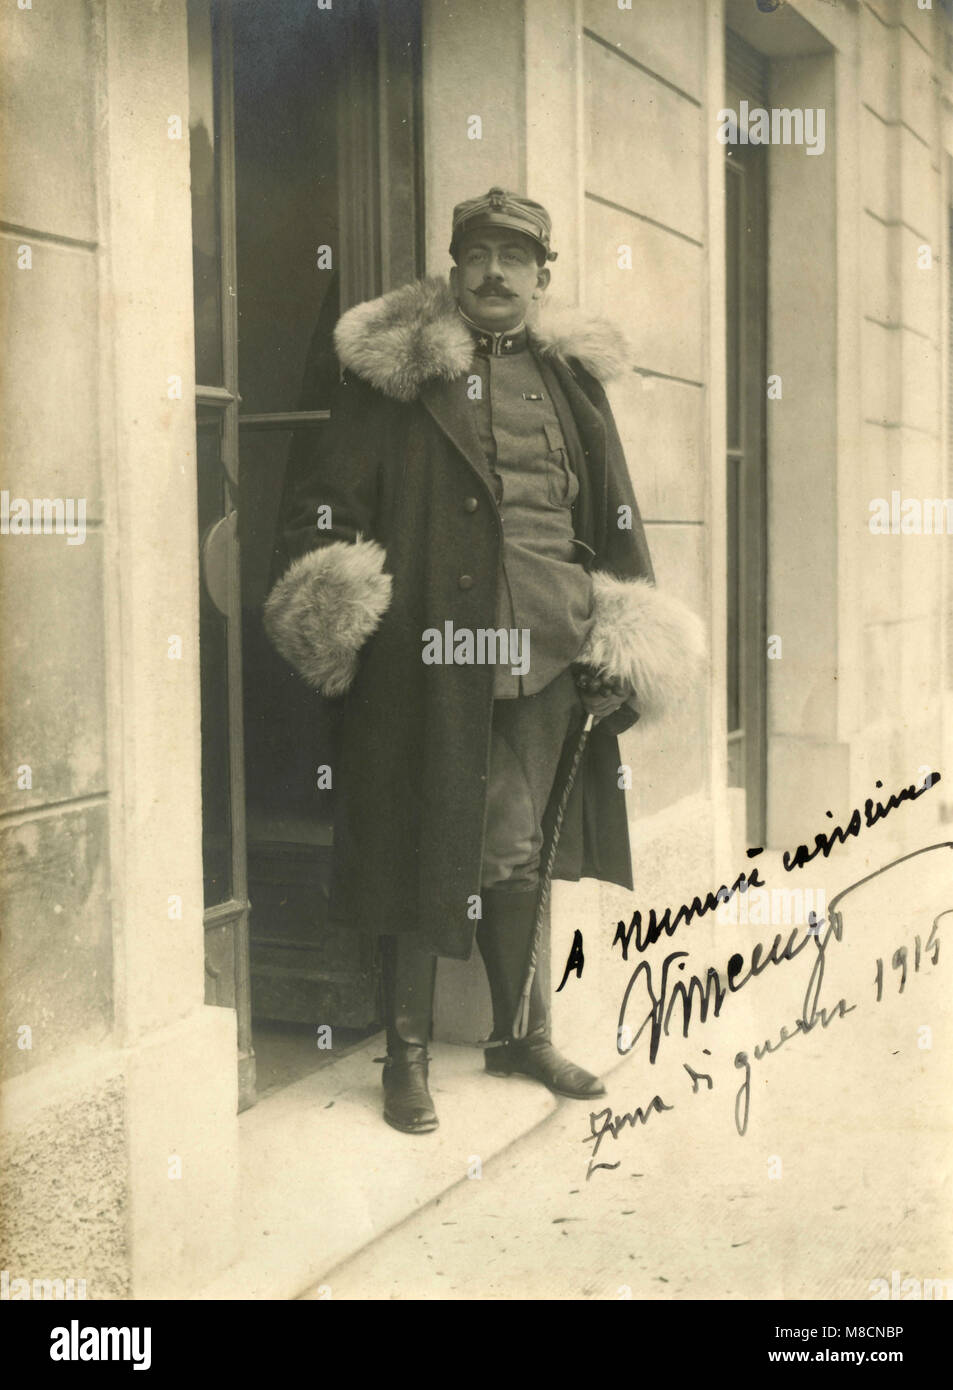 Italian Army officer with fur, 1915 - Stock Image